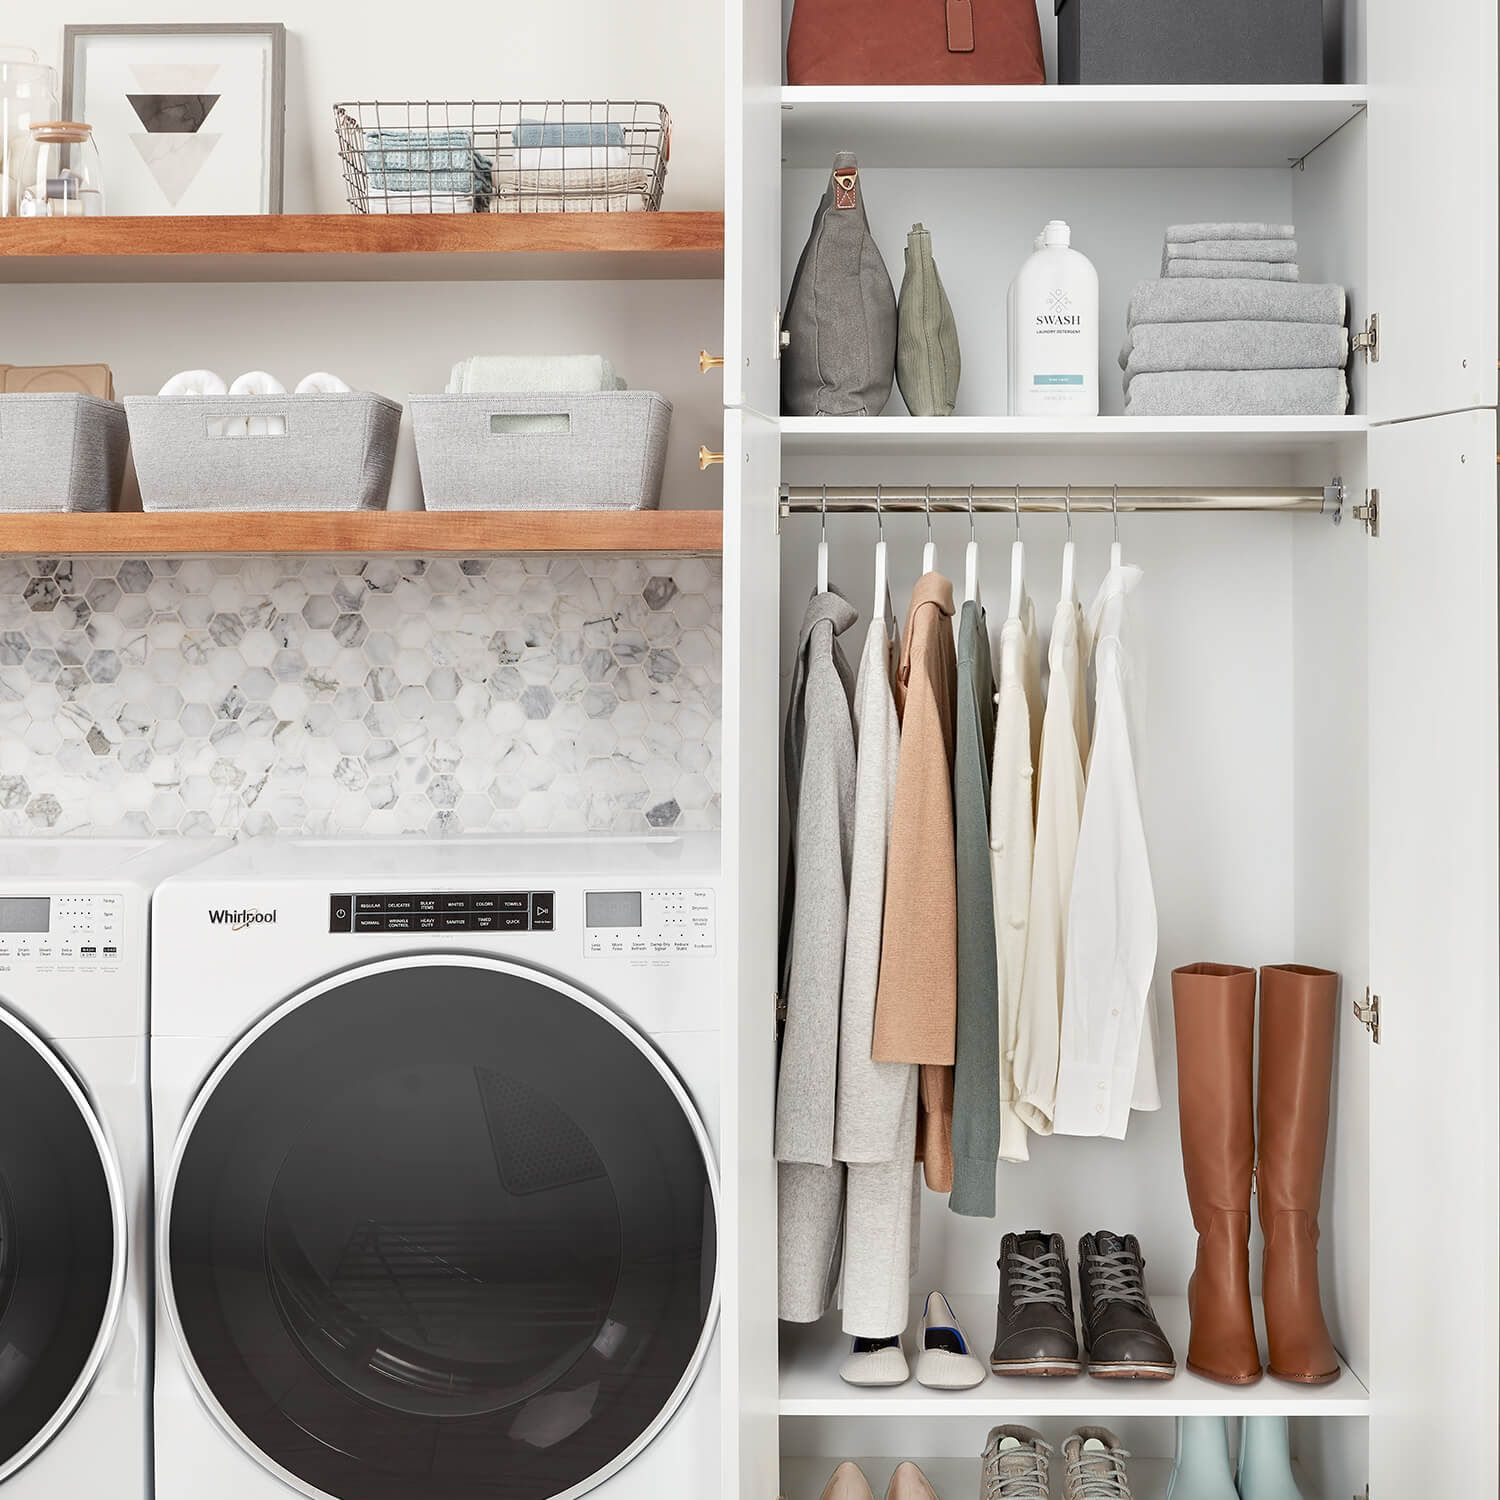 A look at inside of a cabinet in a laundry room with hanging space that is neatly organized next to a white Whirlpool washer and dryer